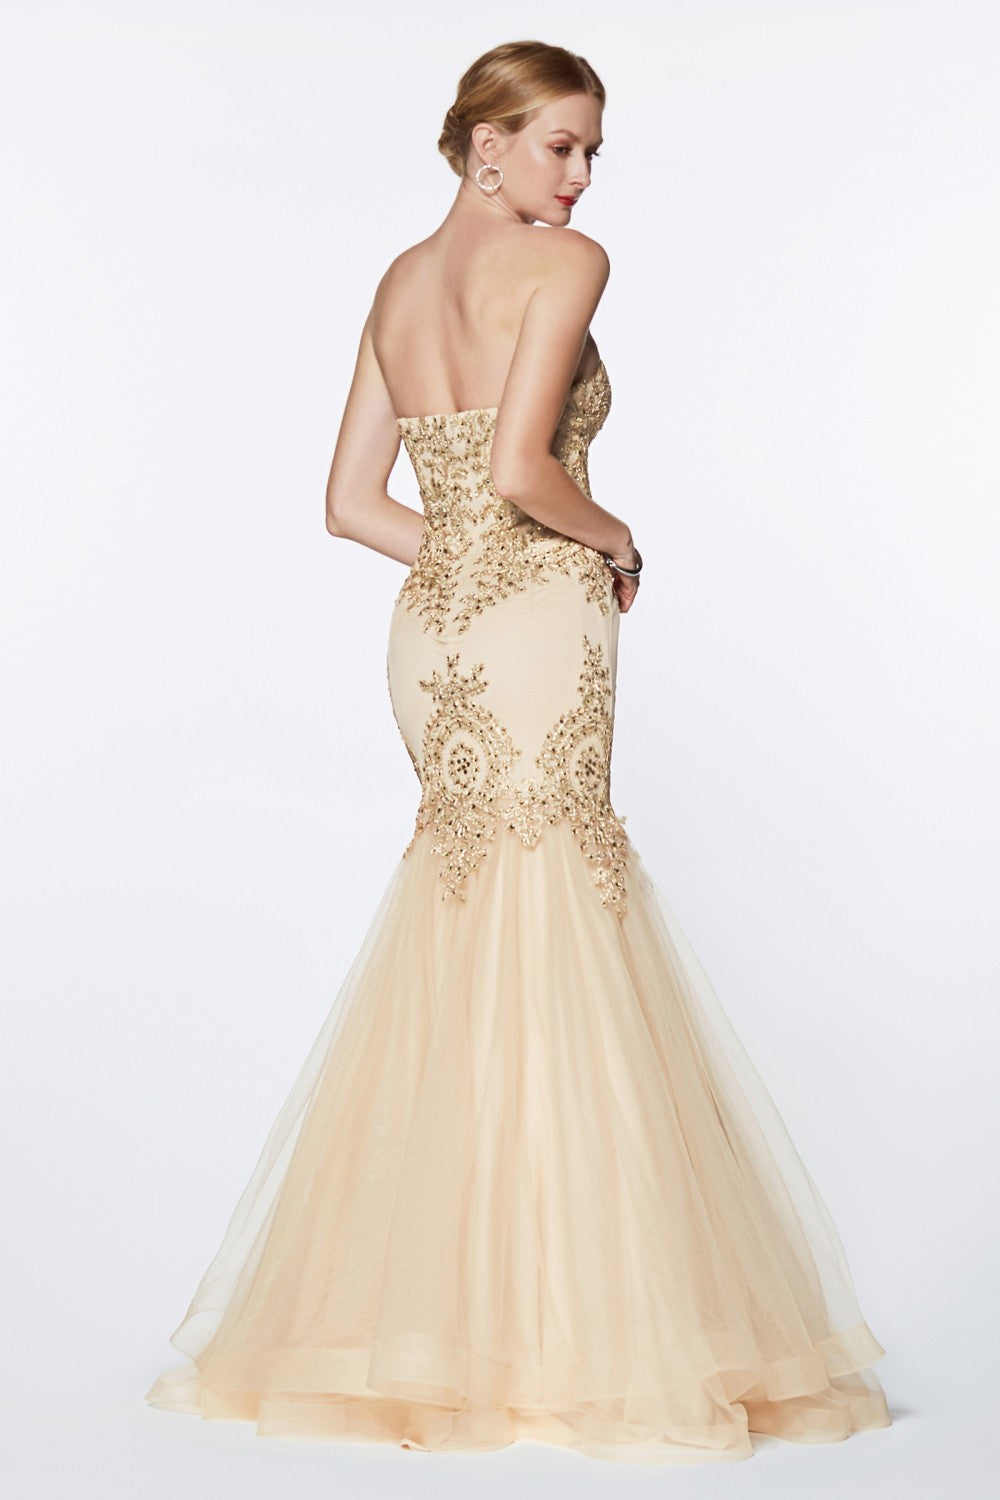 Strapless Mermaid Tulle Gown With Lace Details And Horsehair Trim Hem